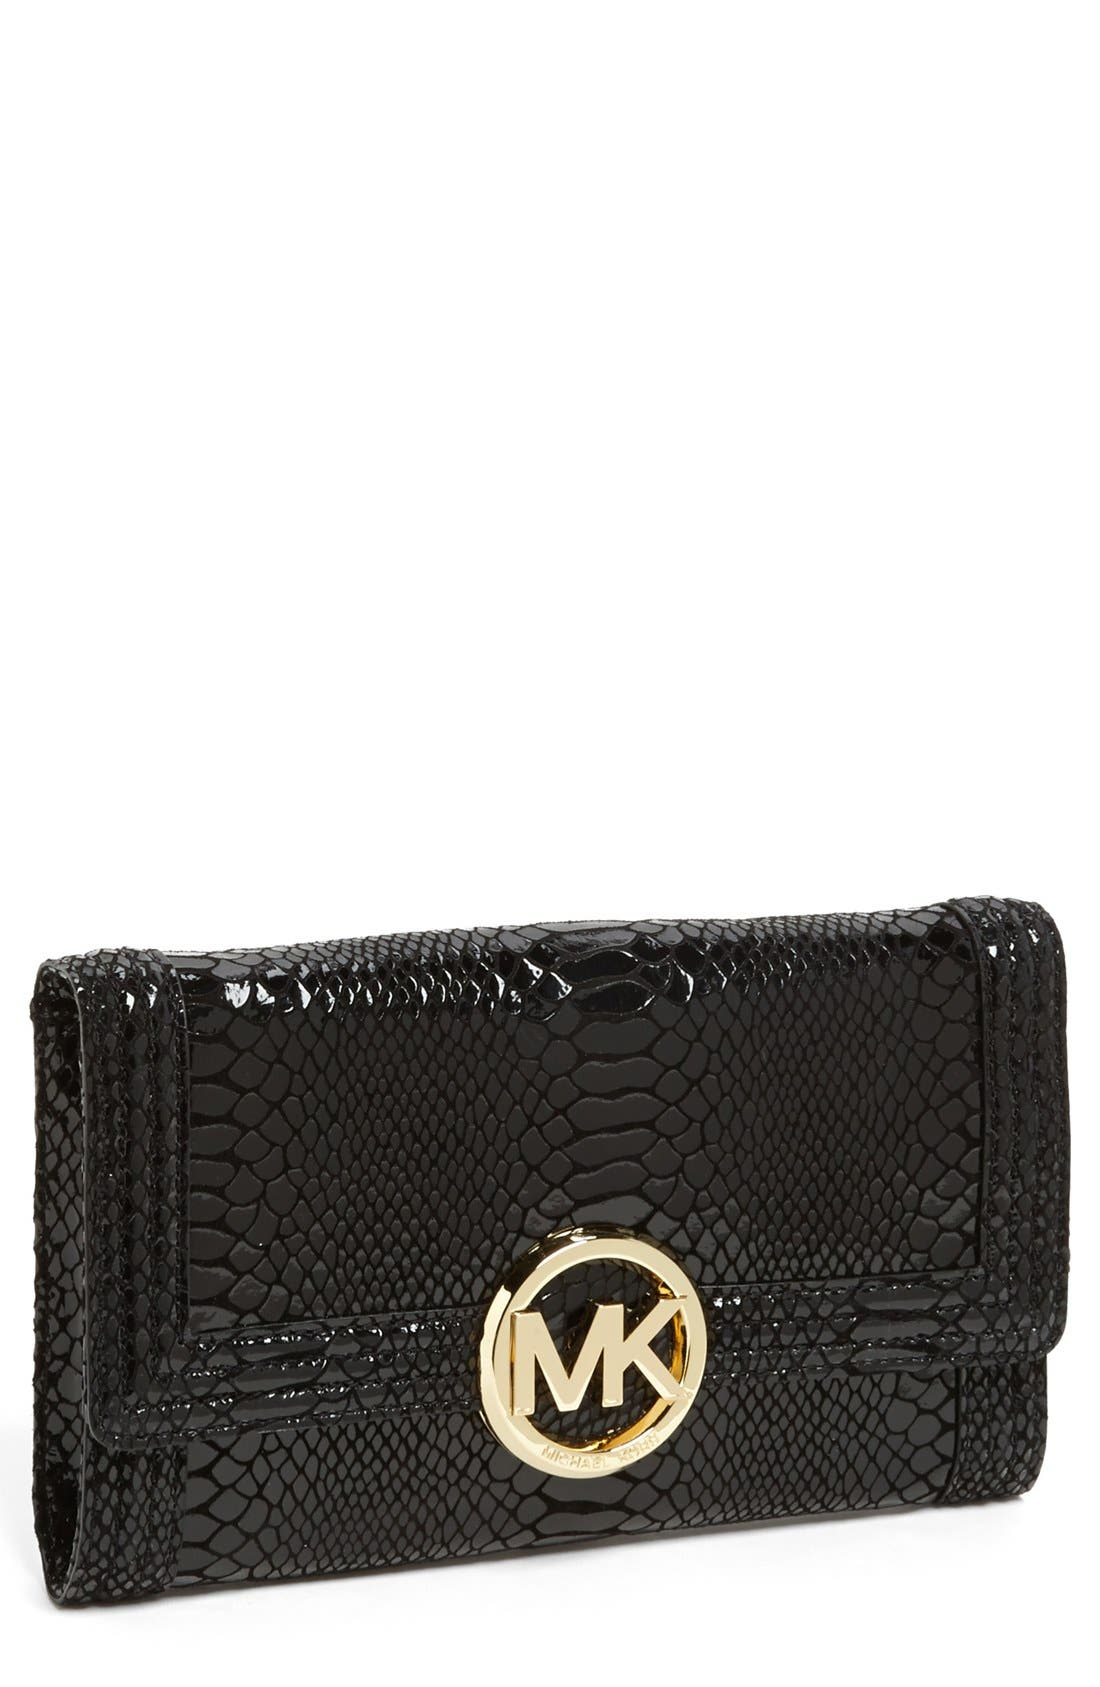 Alternate Image 1 Selected - MICHAEL Michael Kors 'Fulton Bombe' Clutch